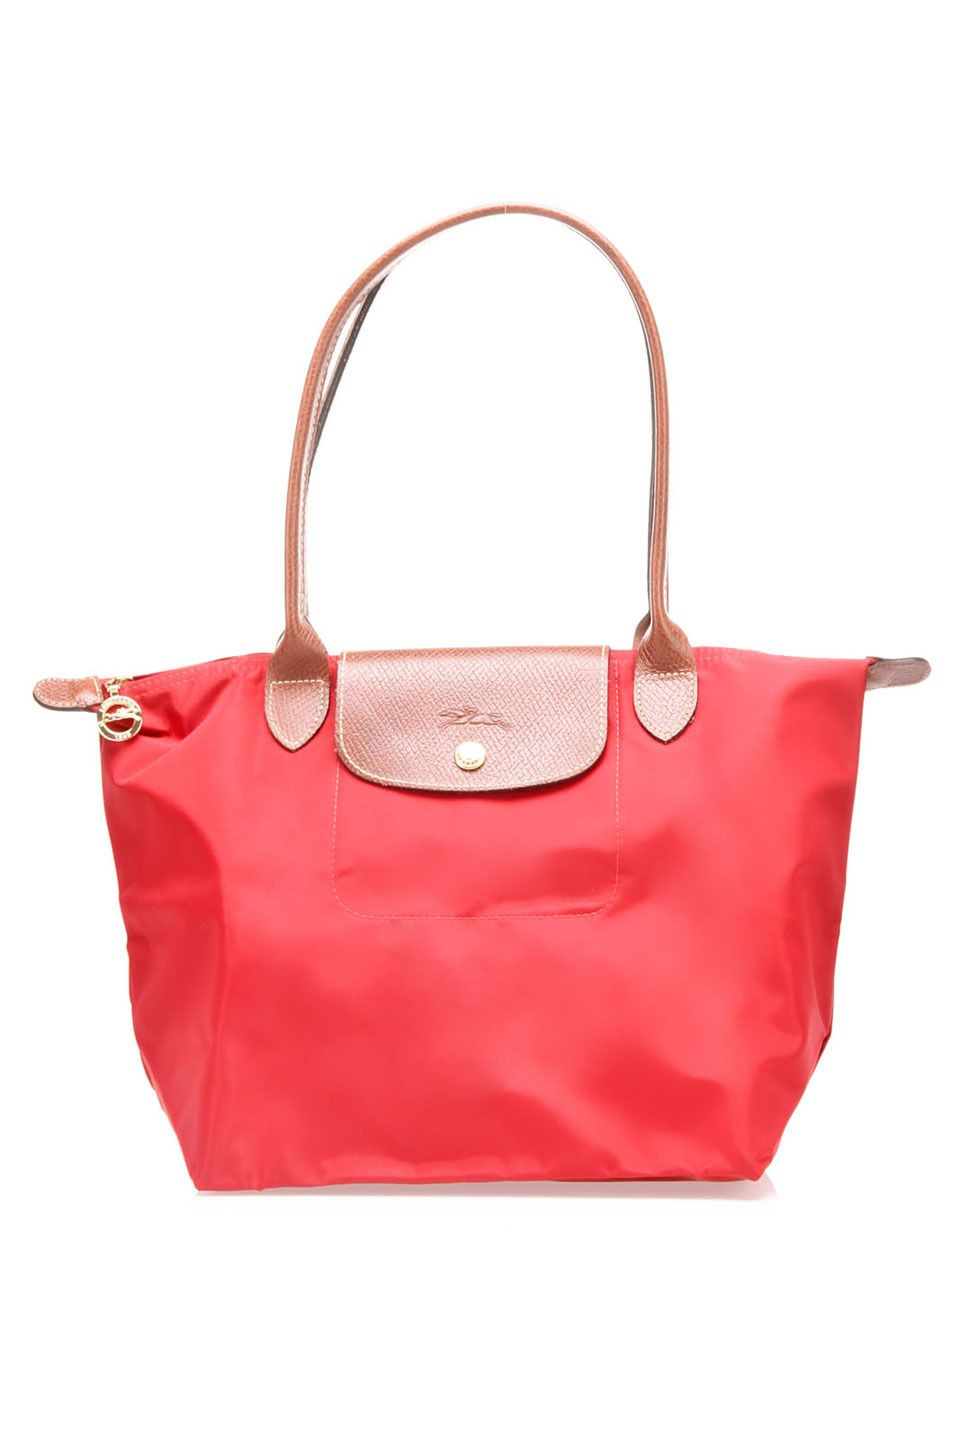 1000+ images about longchanp on Pinterest | Longchamp, Large tote and Totes